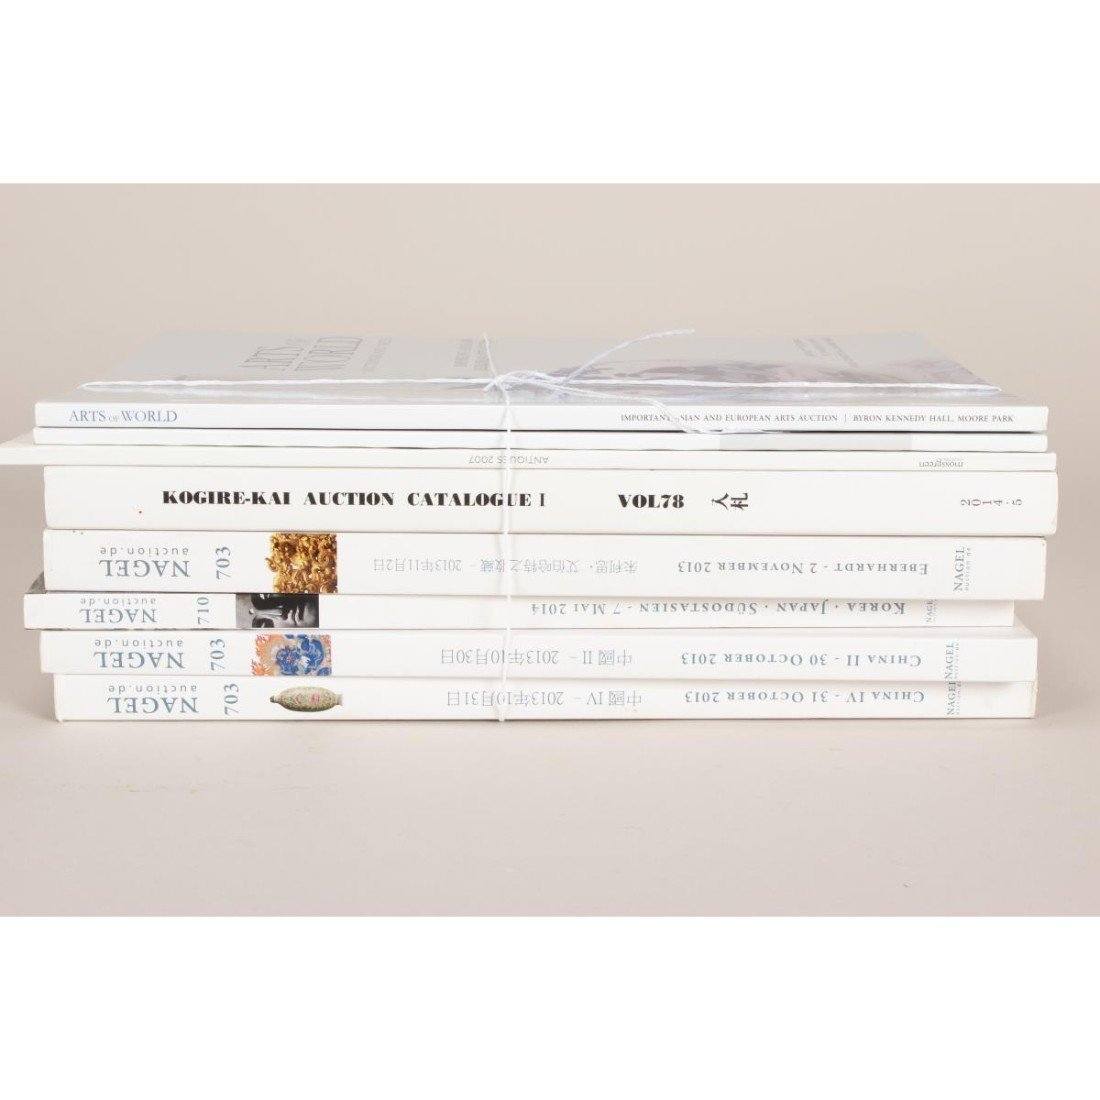 Assorted Nagel Auction Catalogues, - 2